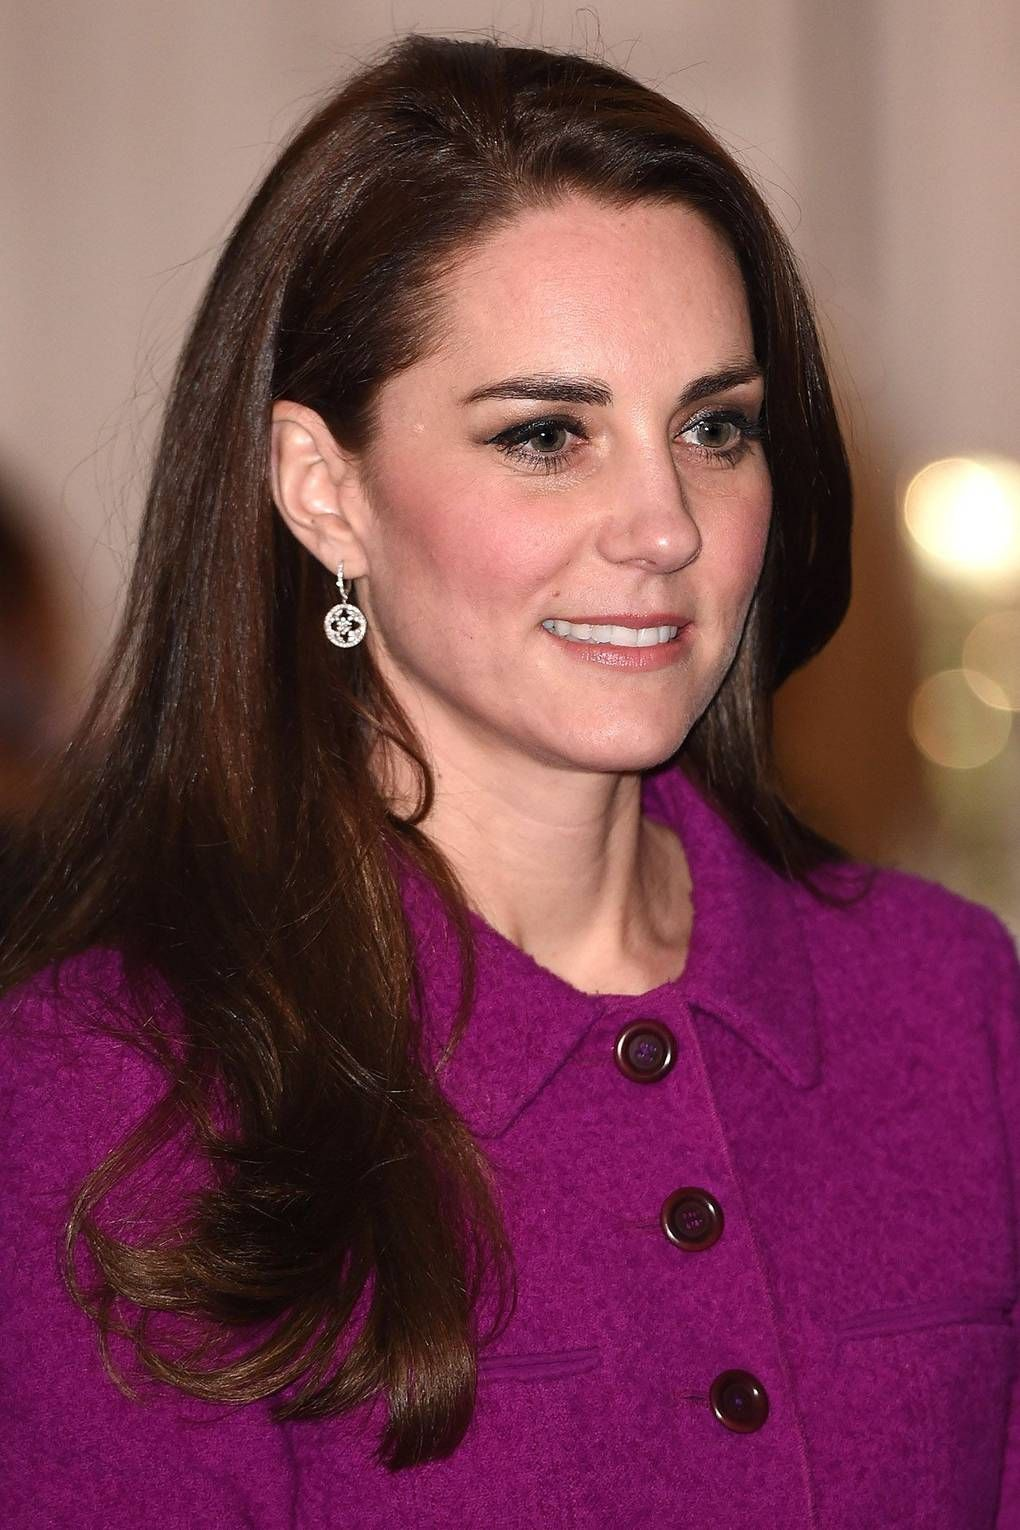 This is what Kate Middleton's beauty look was like before